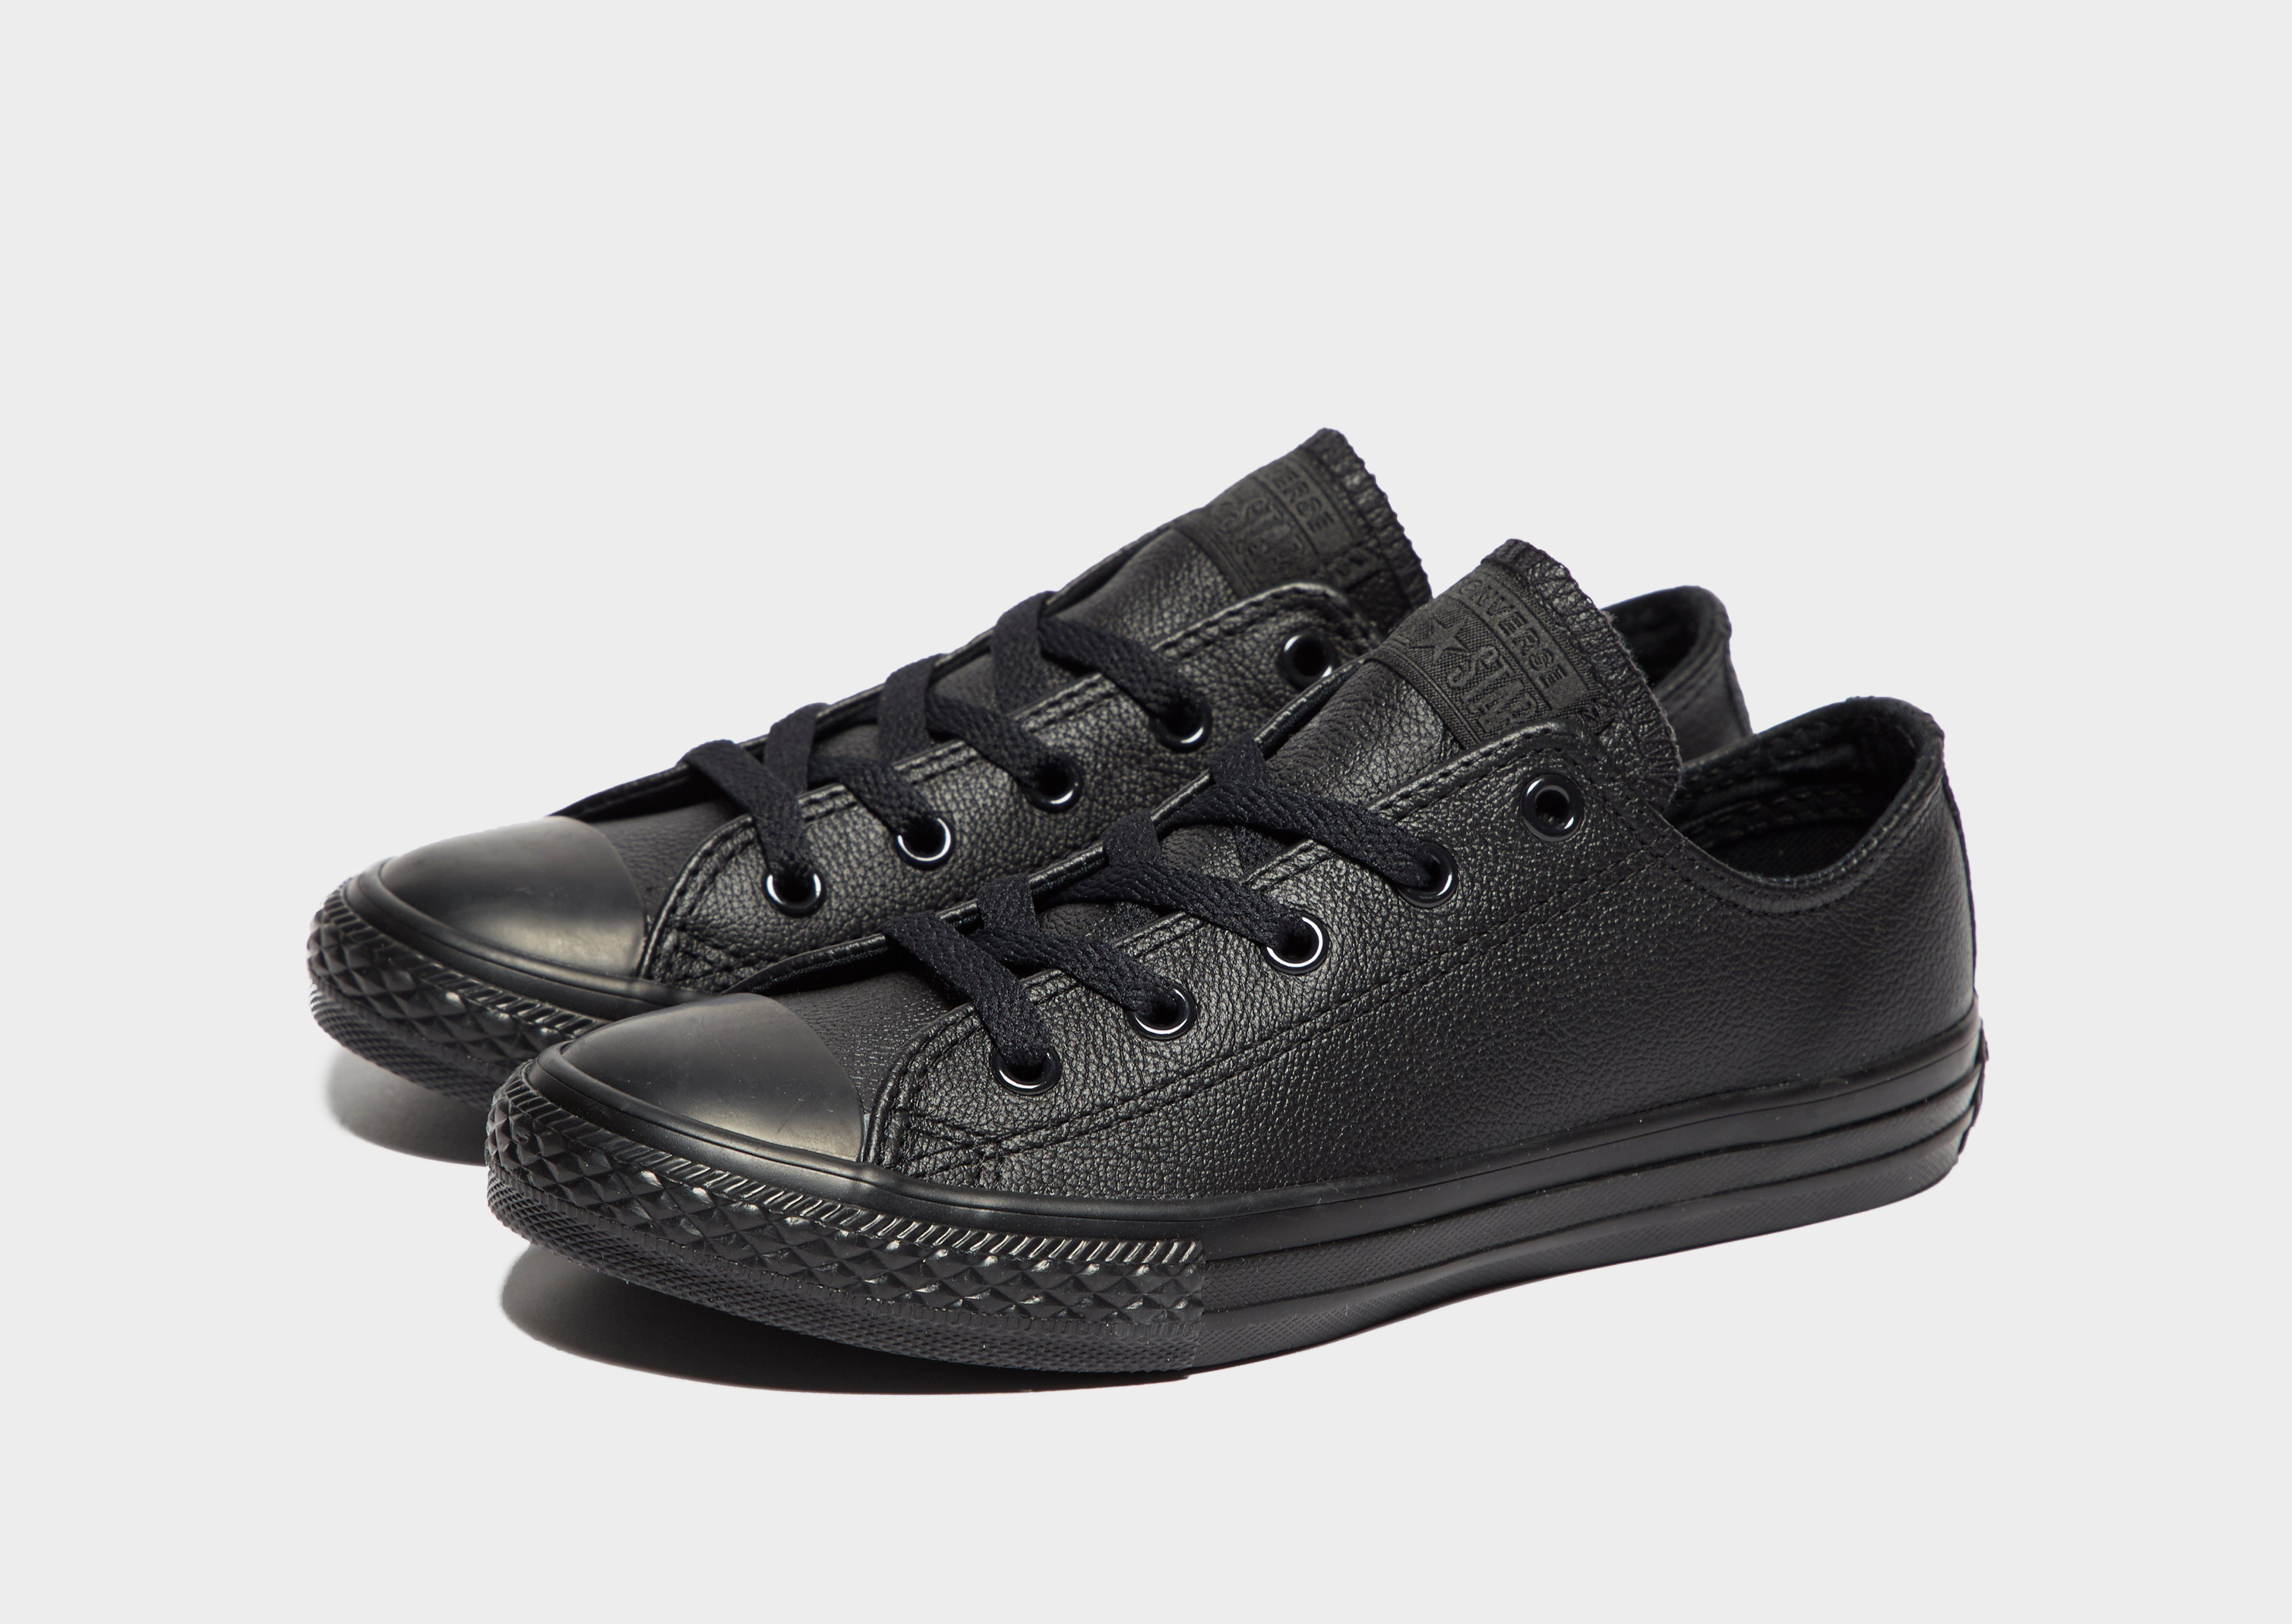 Converse All Star Leather Children